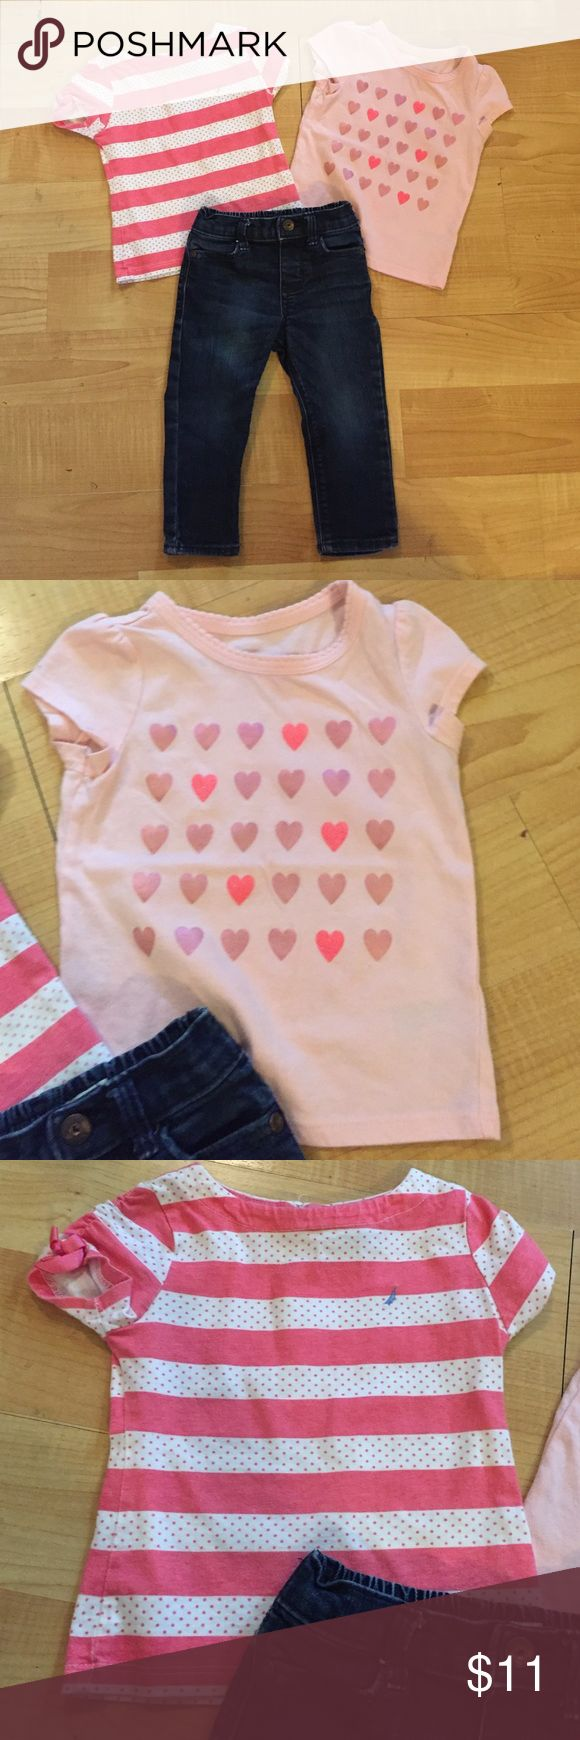 18M Pink Shirt Jeans Outfit No stains no holes. All 18M. All of my kids clothes have been kept very clean!!! Matching Sets